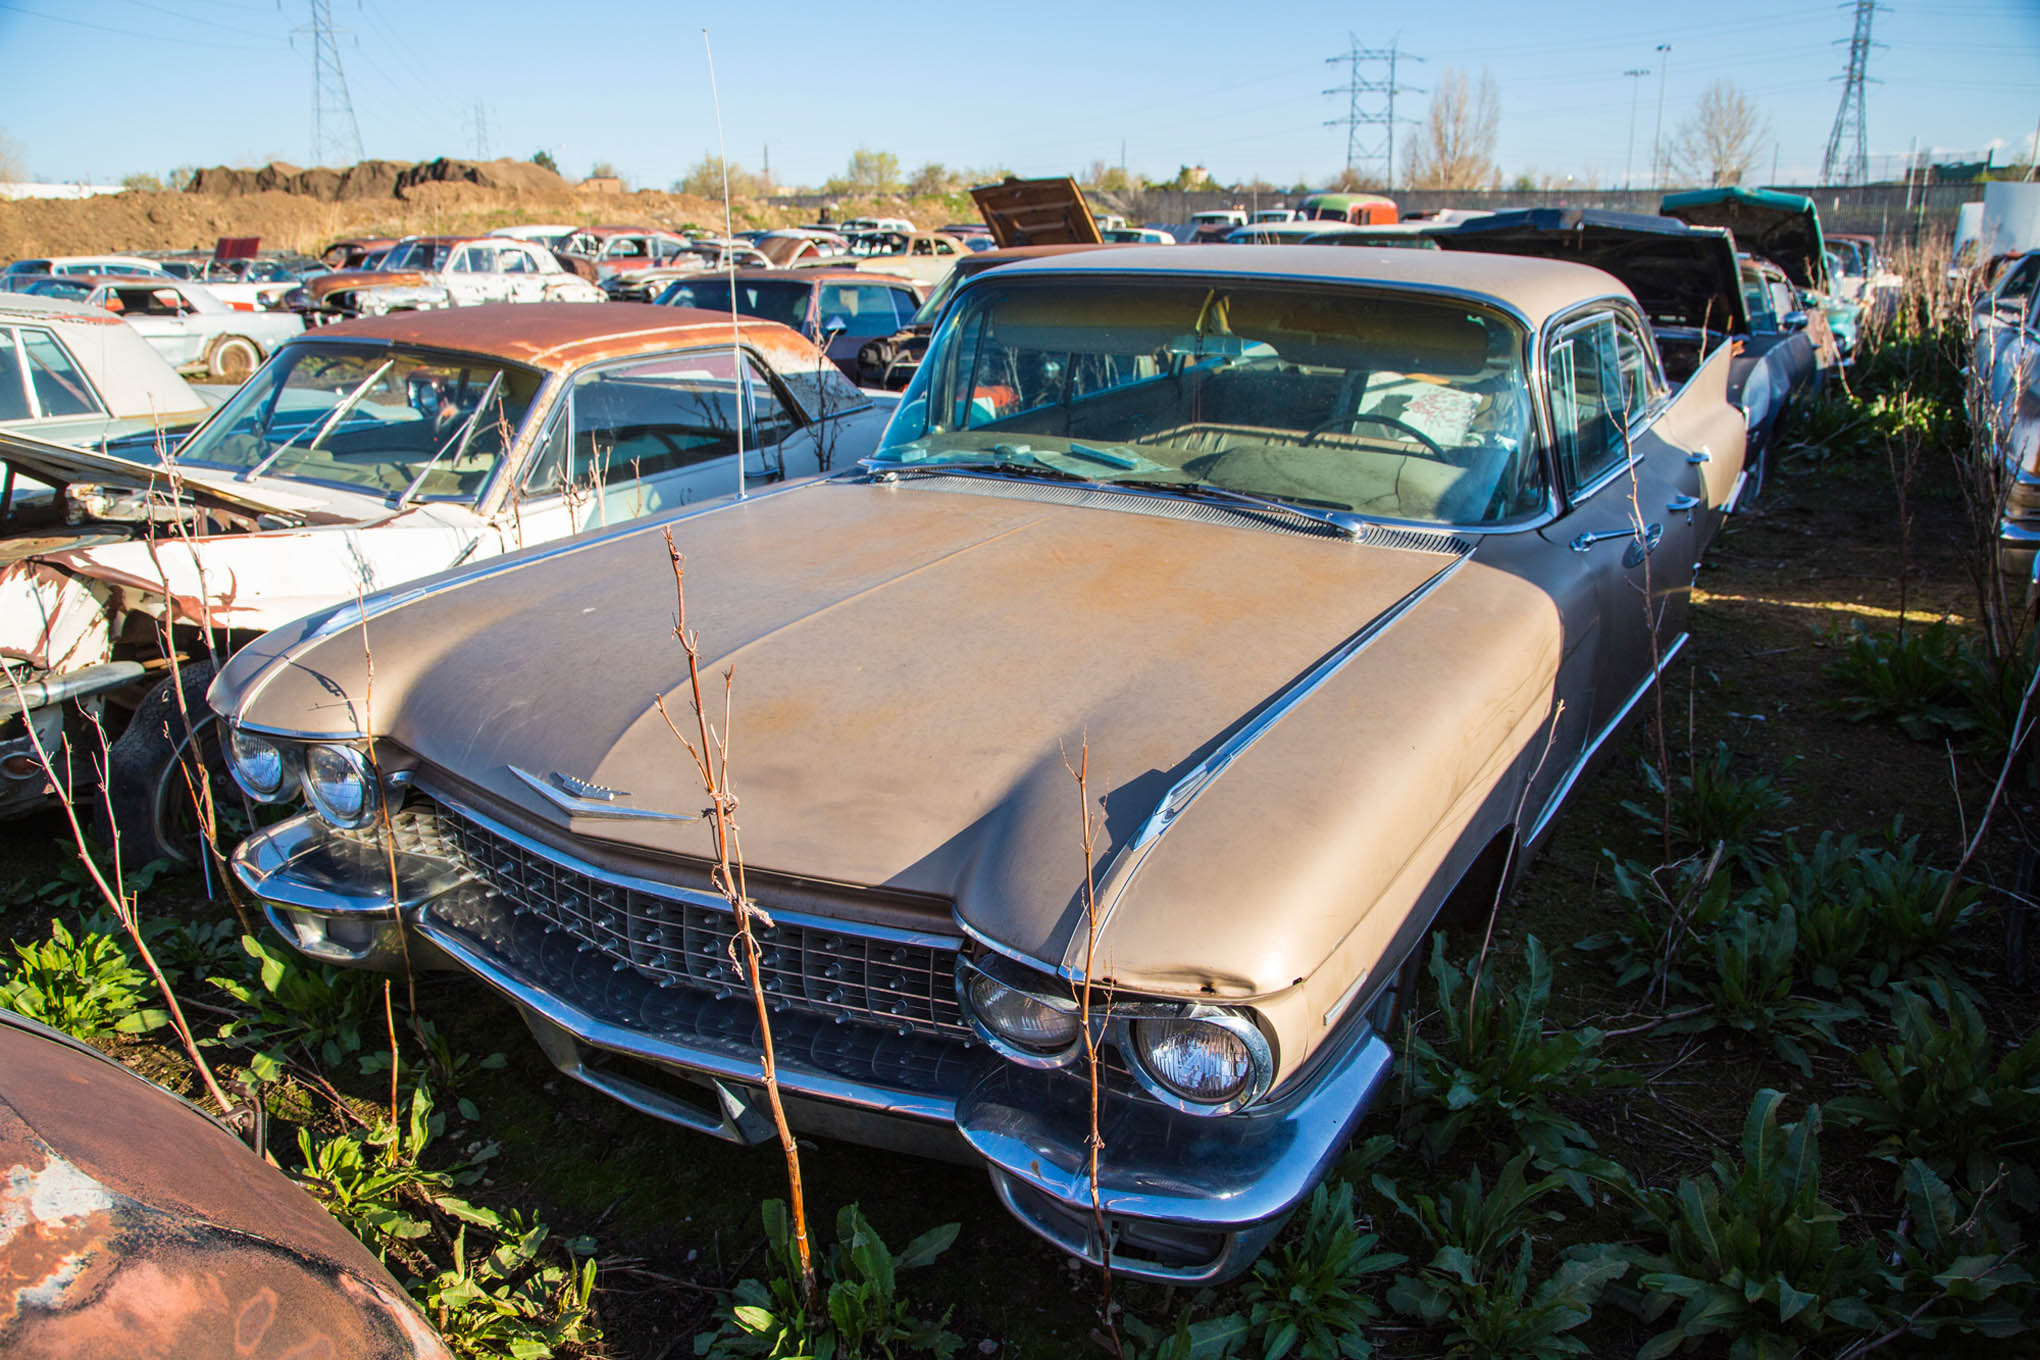 colorado auto parts junkyard musclecars classics wrecking yard mach mustang cougar photo